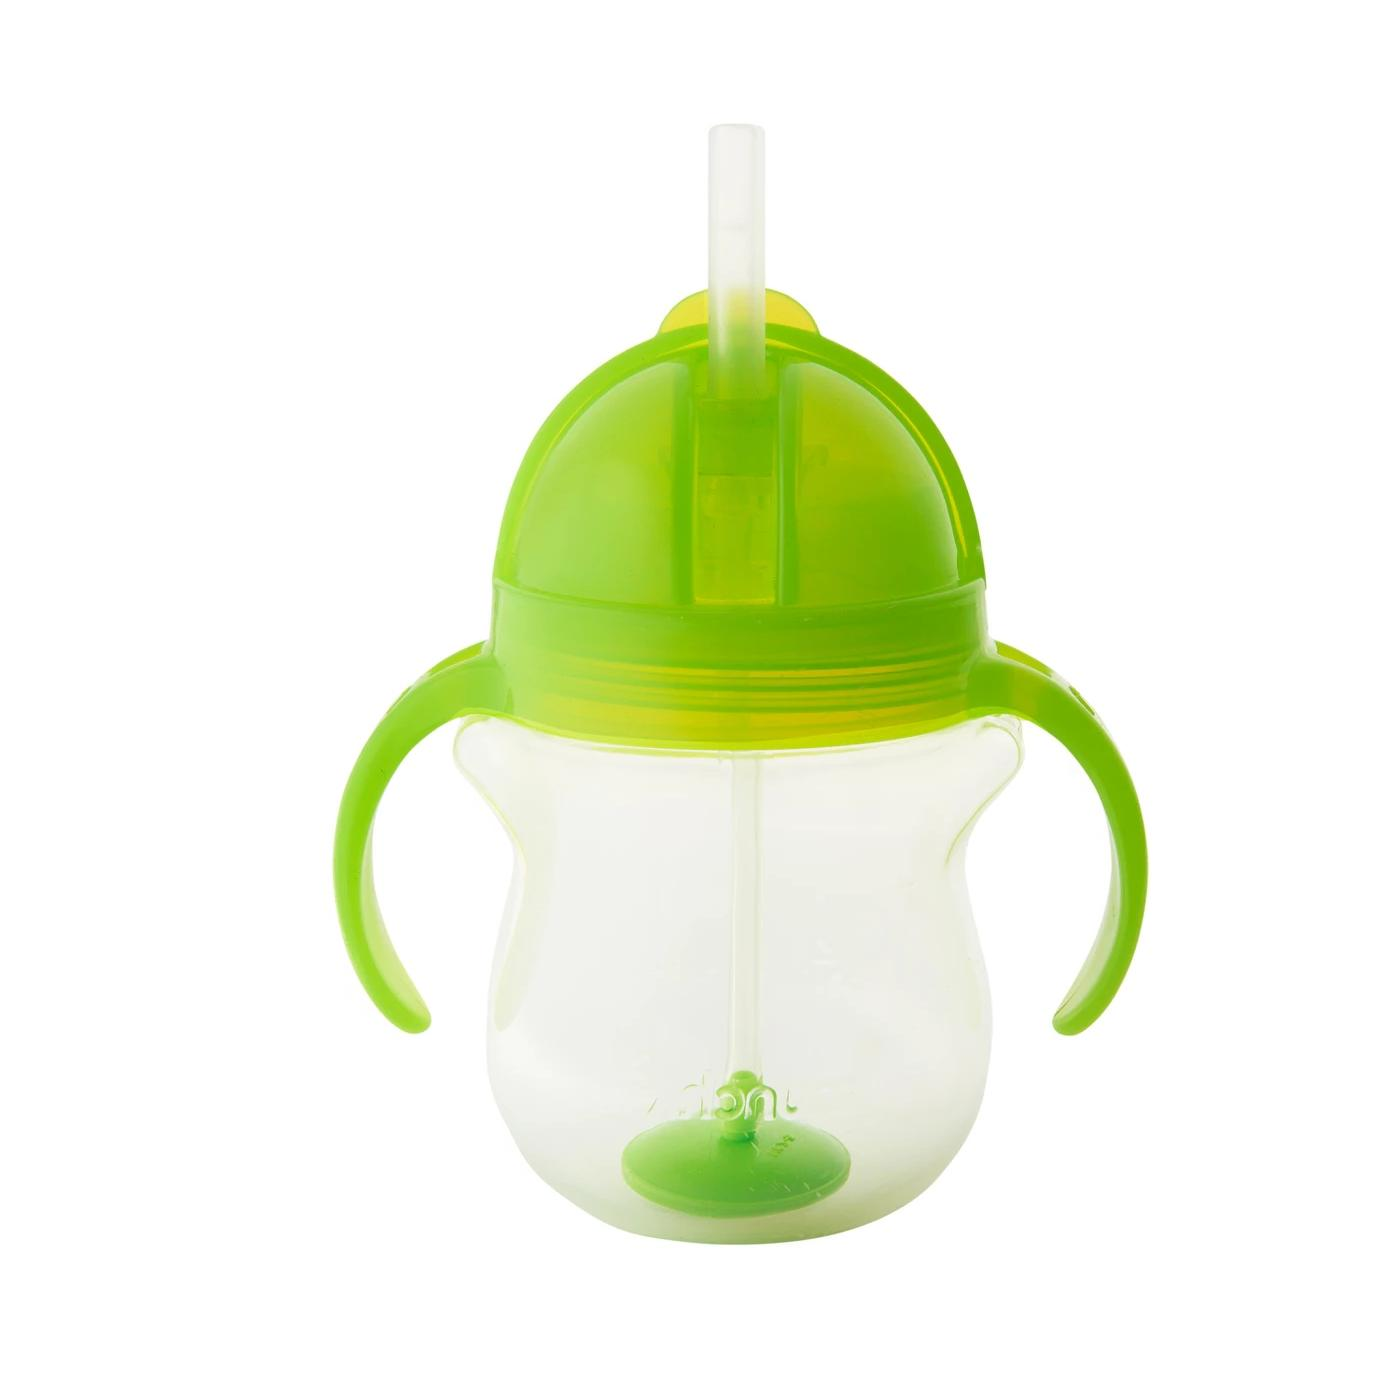 7oz weighted straw sippy cup